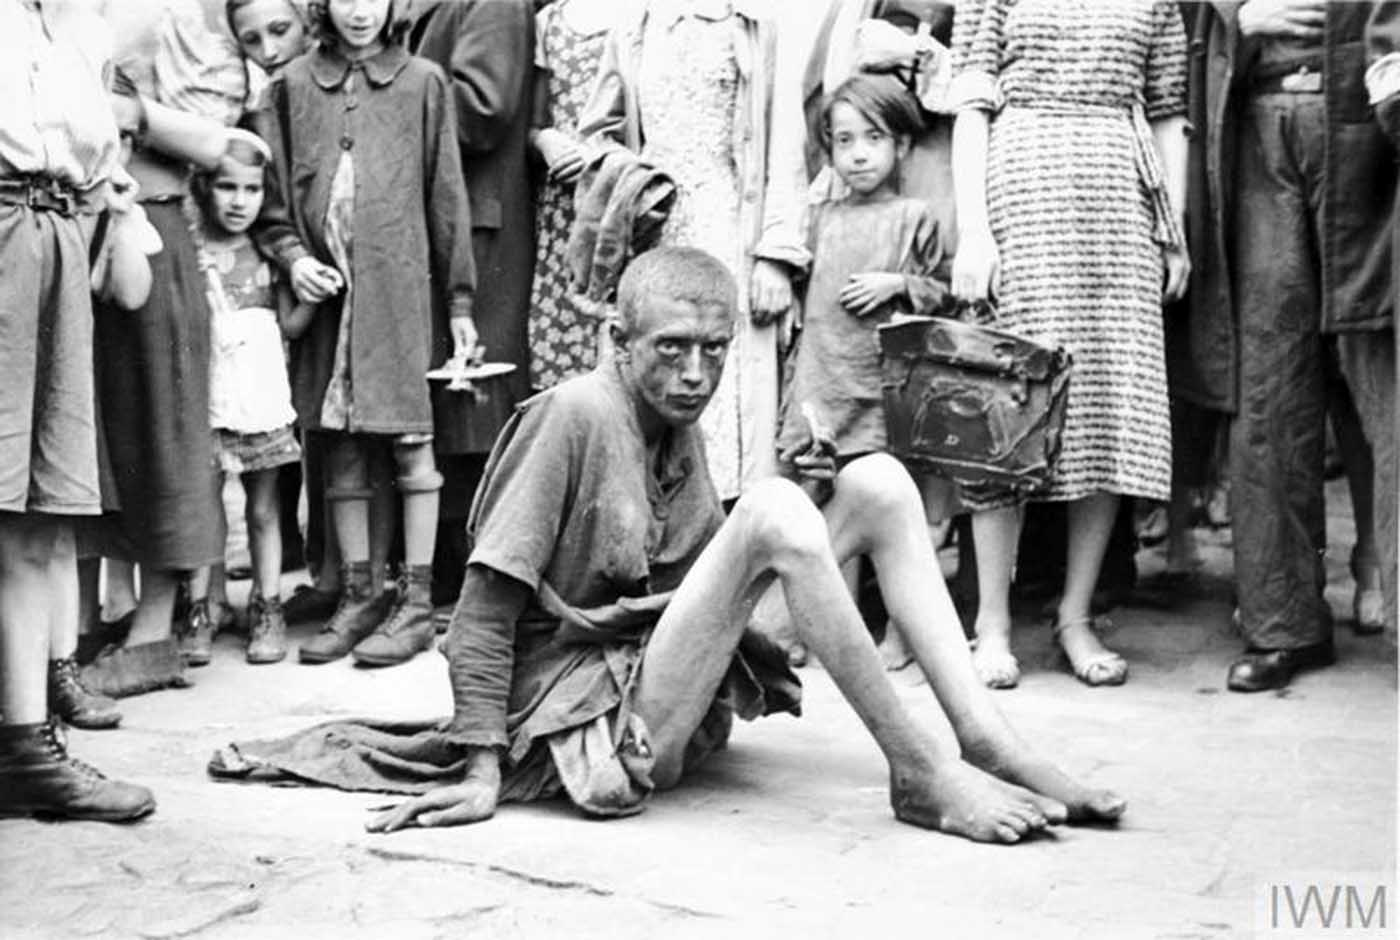 An emaciated boy sitting on a pavement. Note a crowd of pedestrians around him, including children with toys.